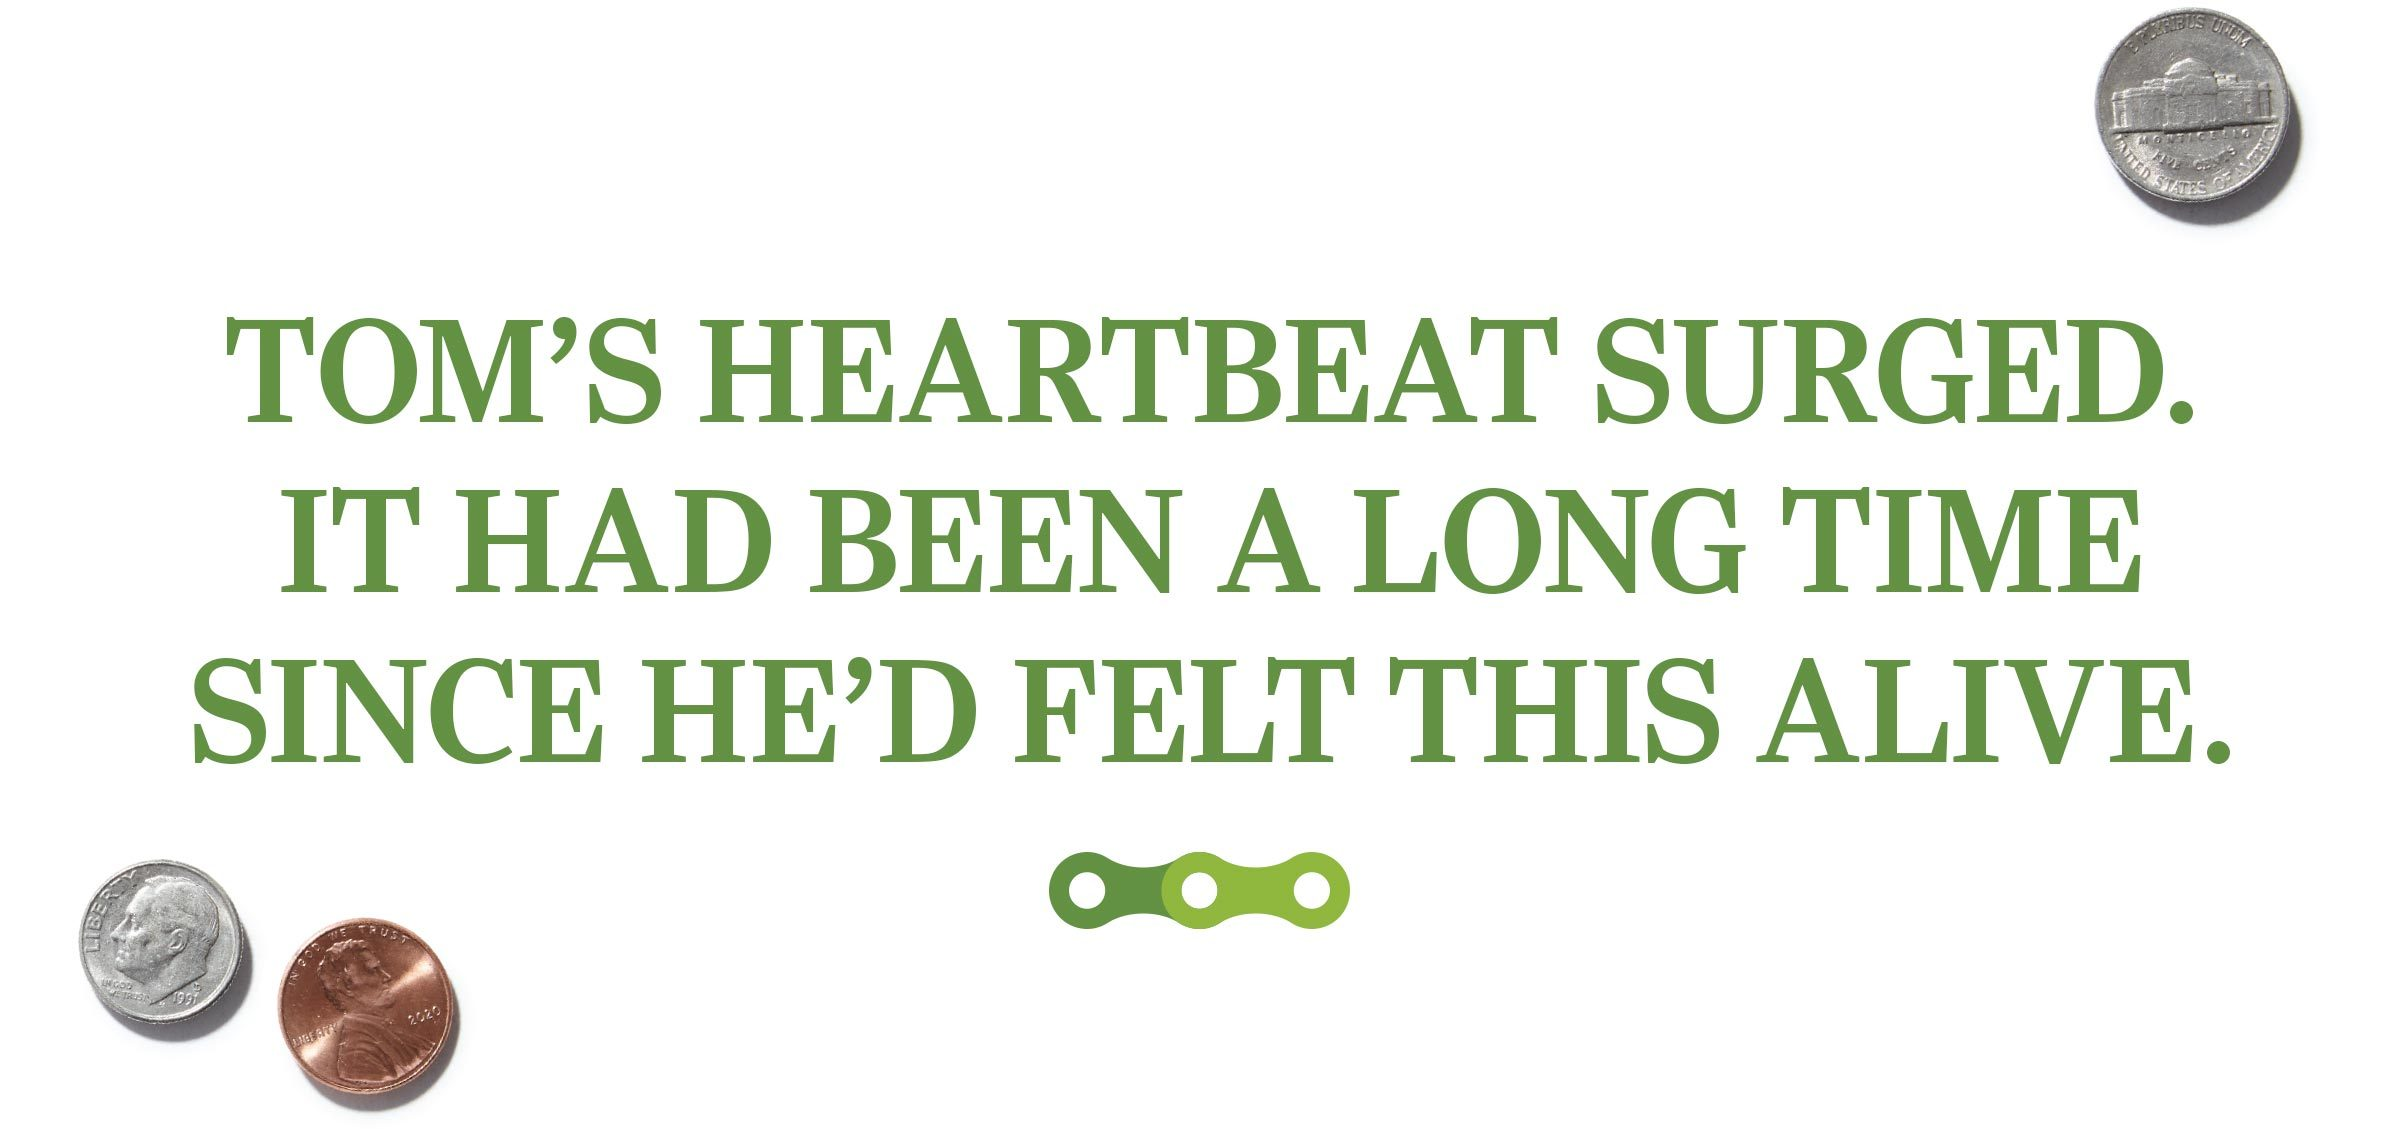 text: Tom's heartbeat surged. It had been a long time since he'd felt this alive.